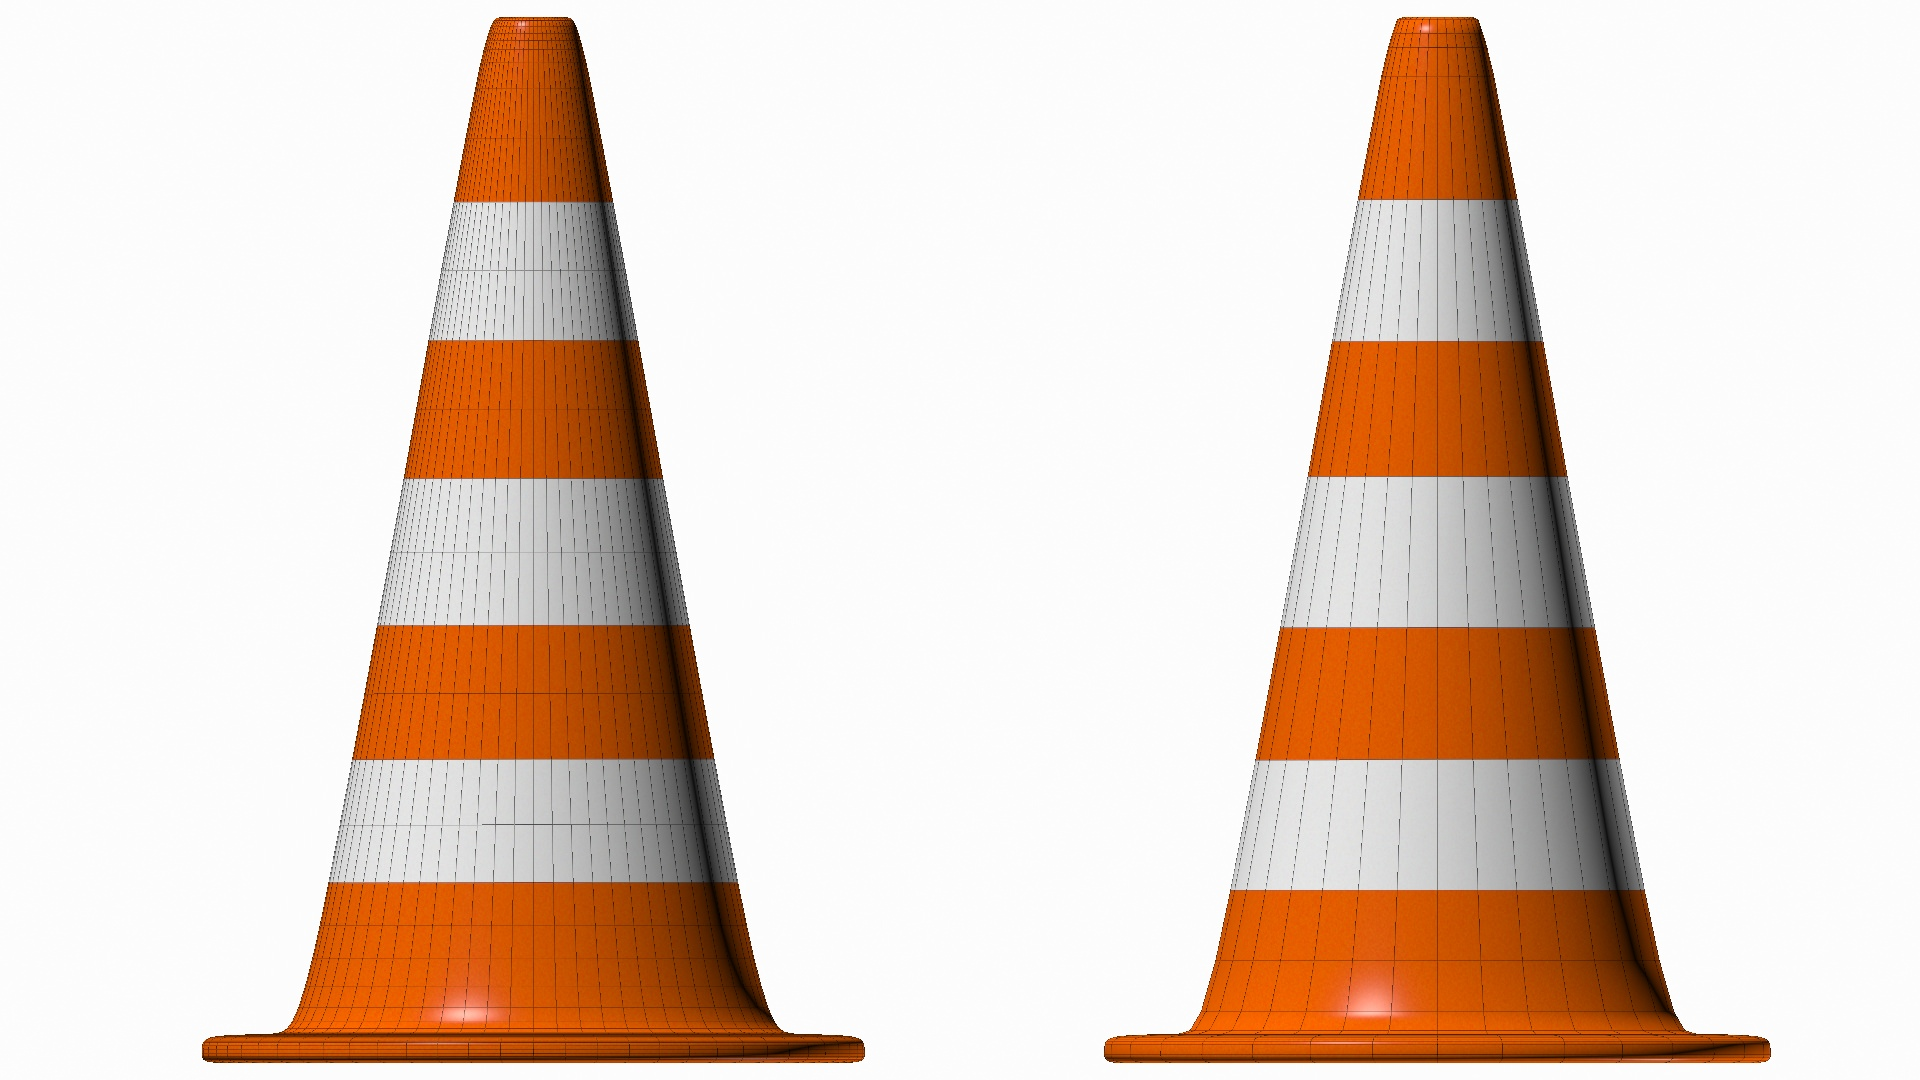 Diy Bed Table Traffic Cone 3d Model Max Obj 3ds Fbx Dxf Dwg